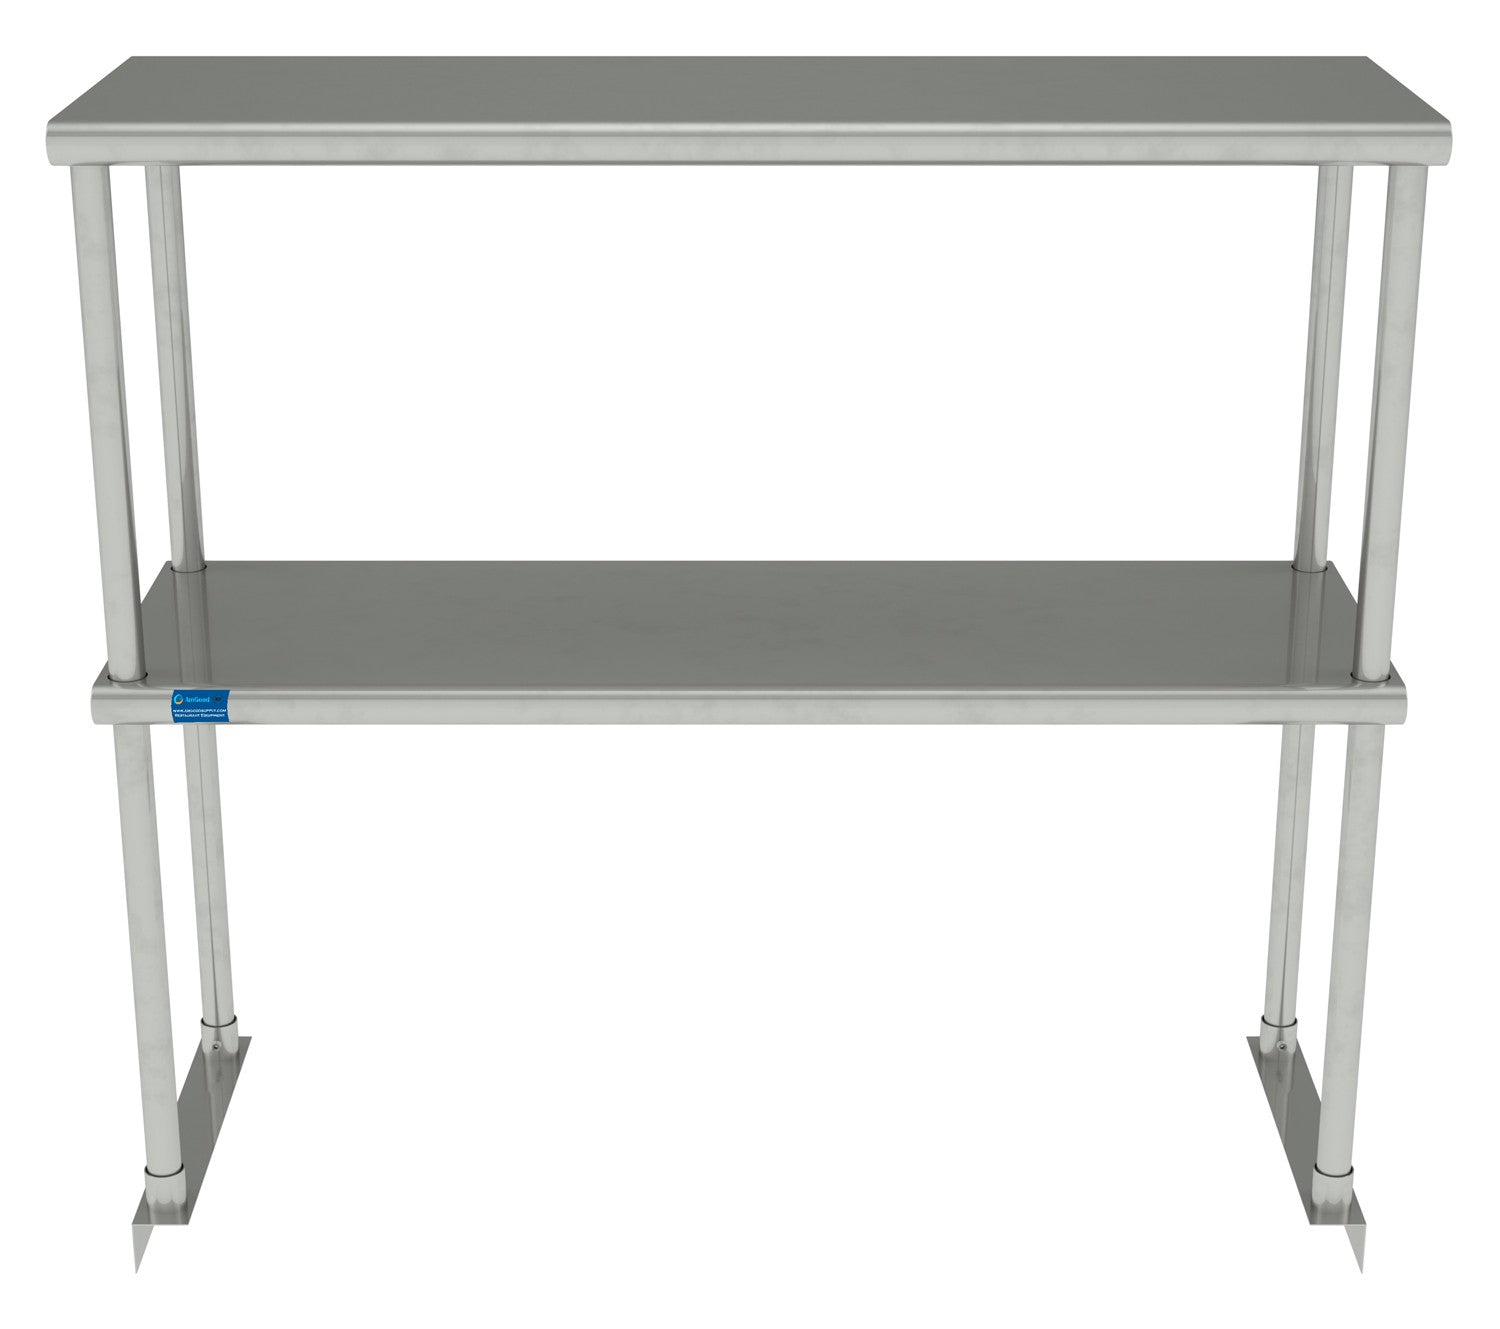 "12"" X 36"" Stainless Steel Double-Tier Shelf - AmGoodSupply.com"